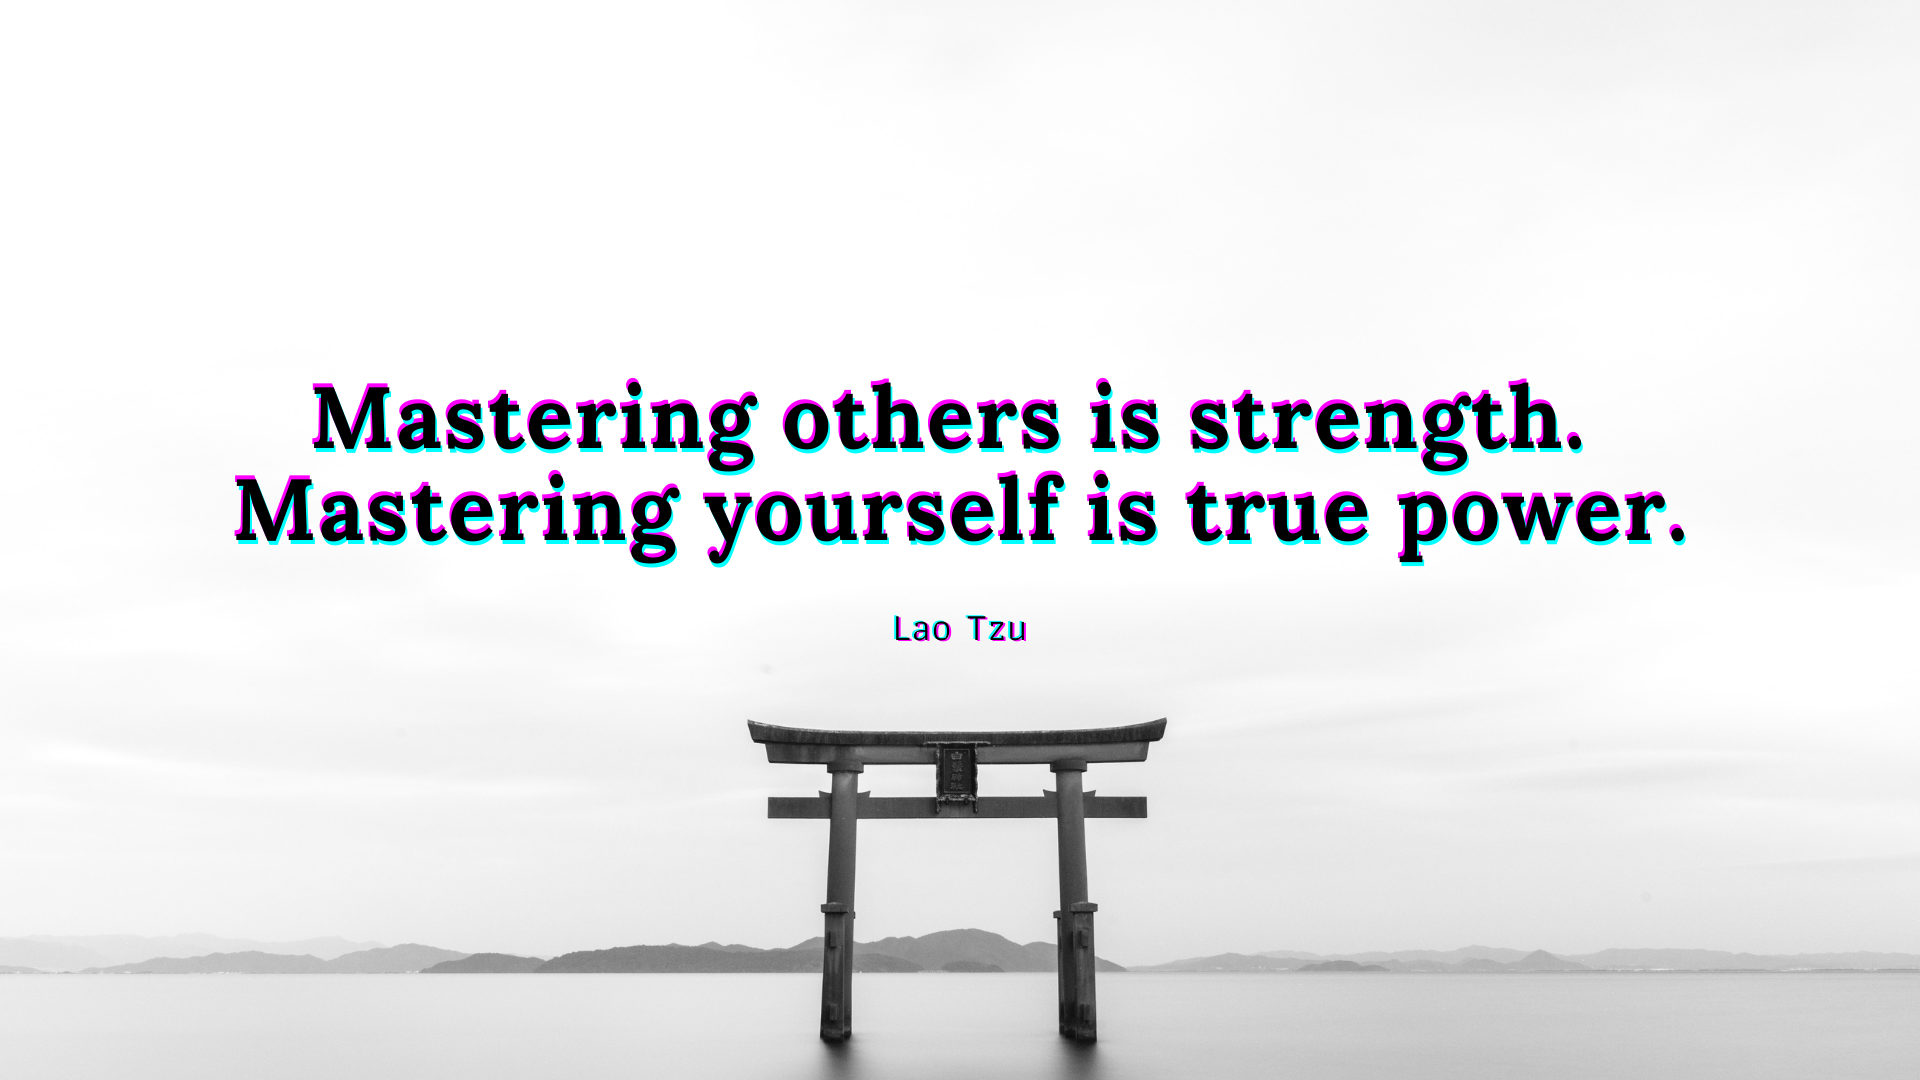 Mastering others is strength. Mastering yourself is true power – Lao Tzu[1920×1080]